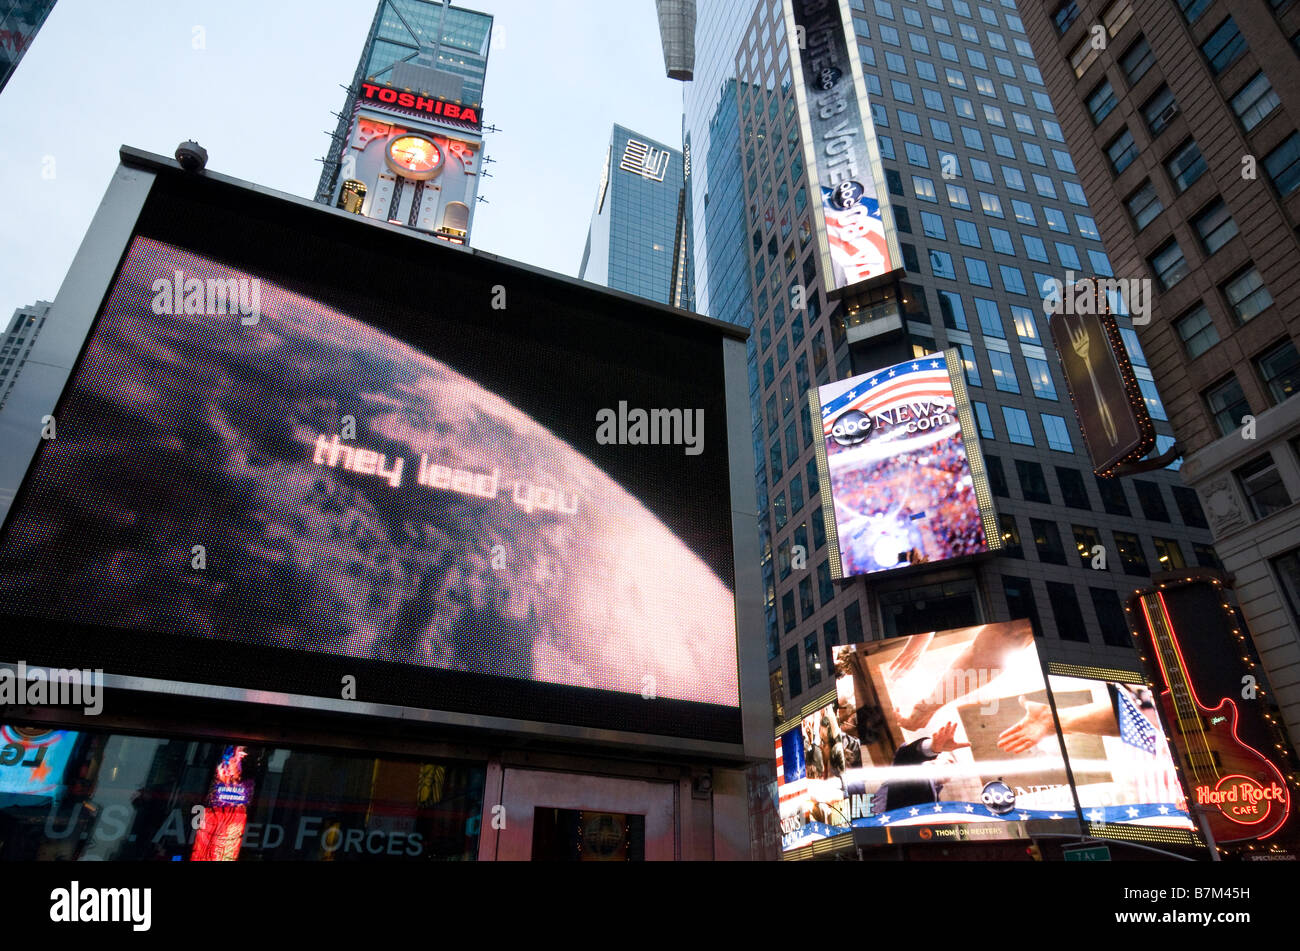 Army recruitment and election advertising in Times Square, New York, USA, November 2008 - Stock Image